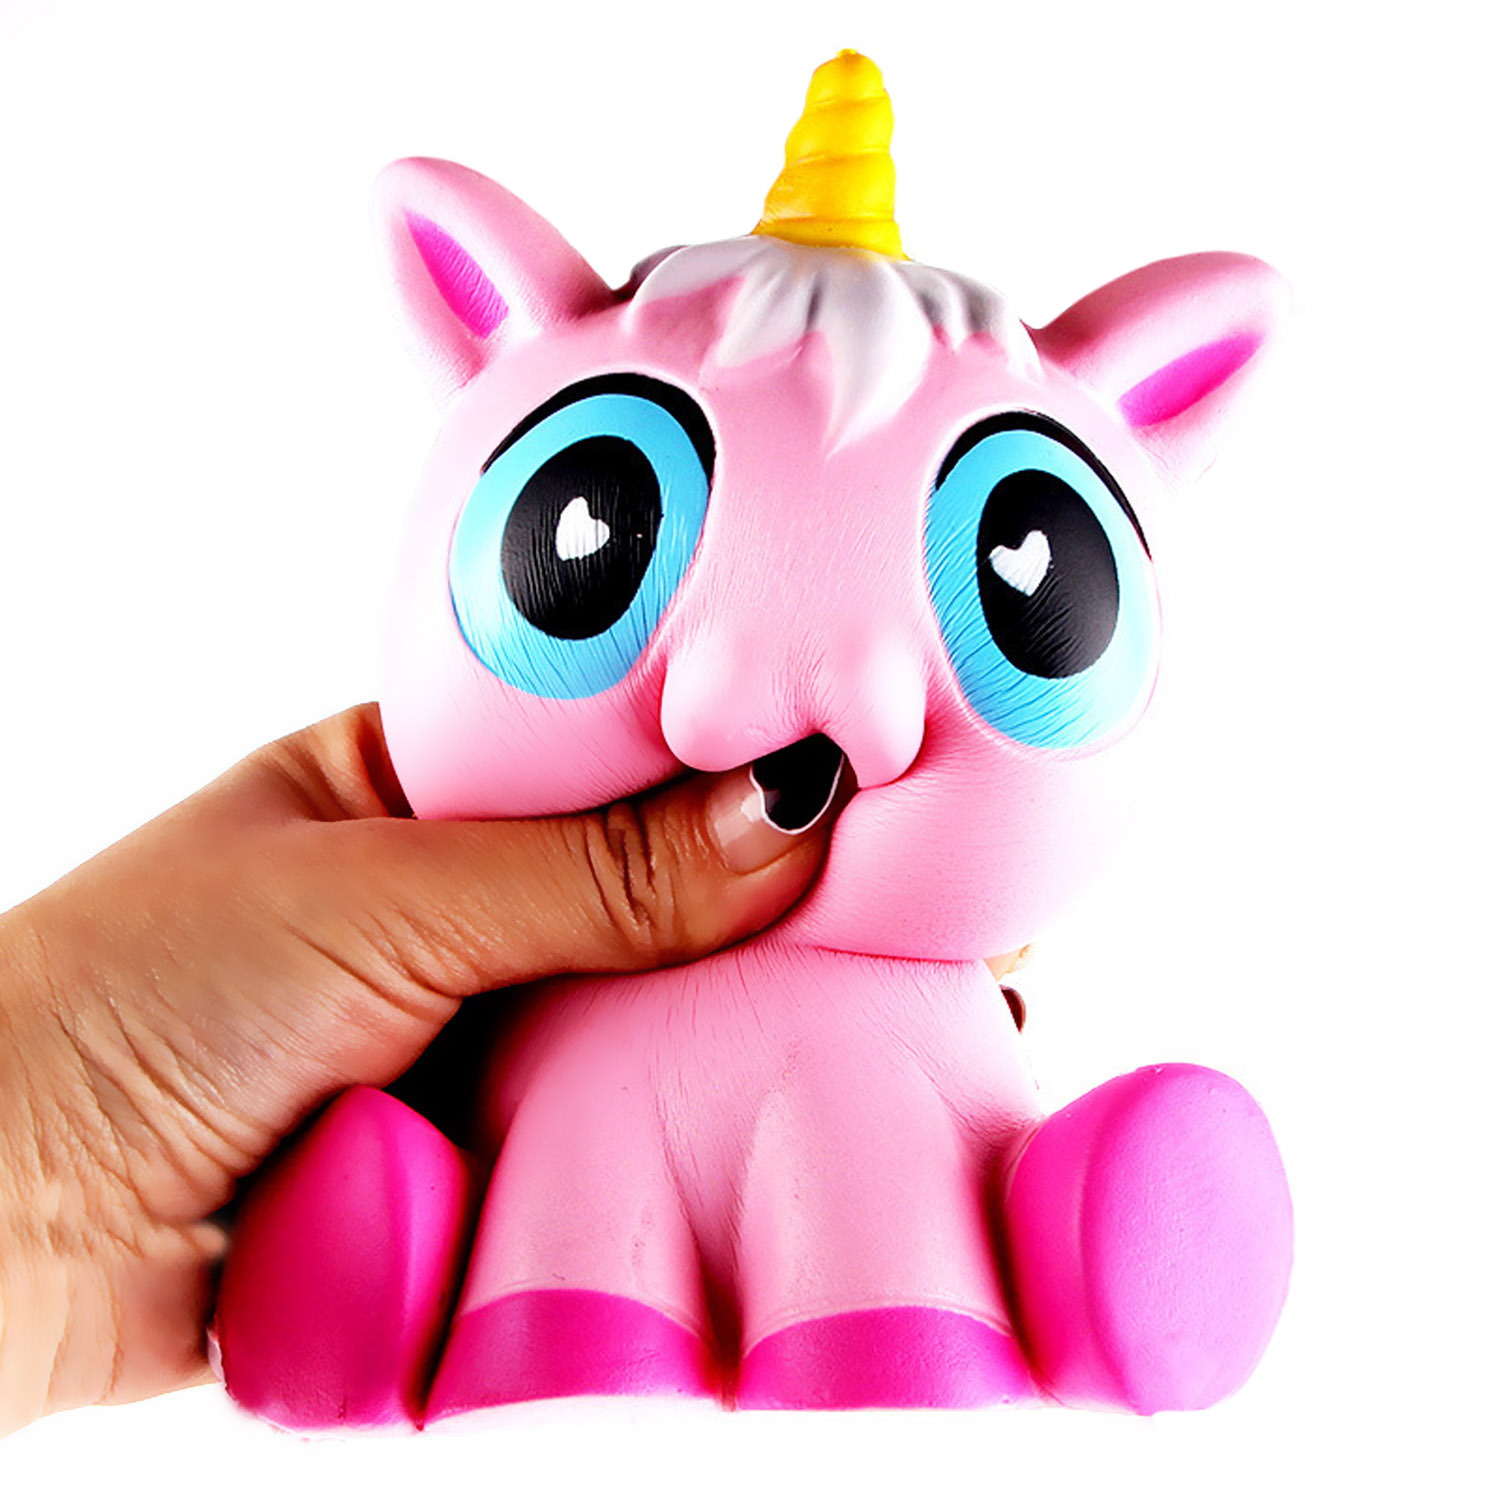 Satkago Cute Kawaii Soft Squishy Unicorn Toy Slow Rising for Kids Adults Relieves Stress Anxiety Home Decor Props